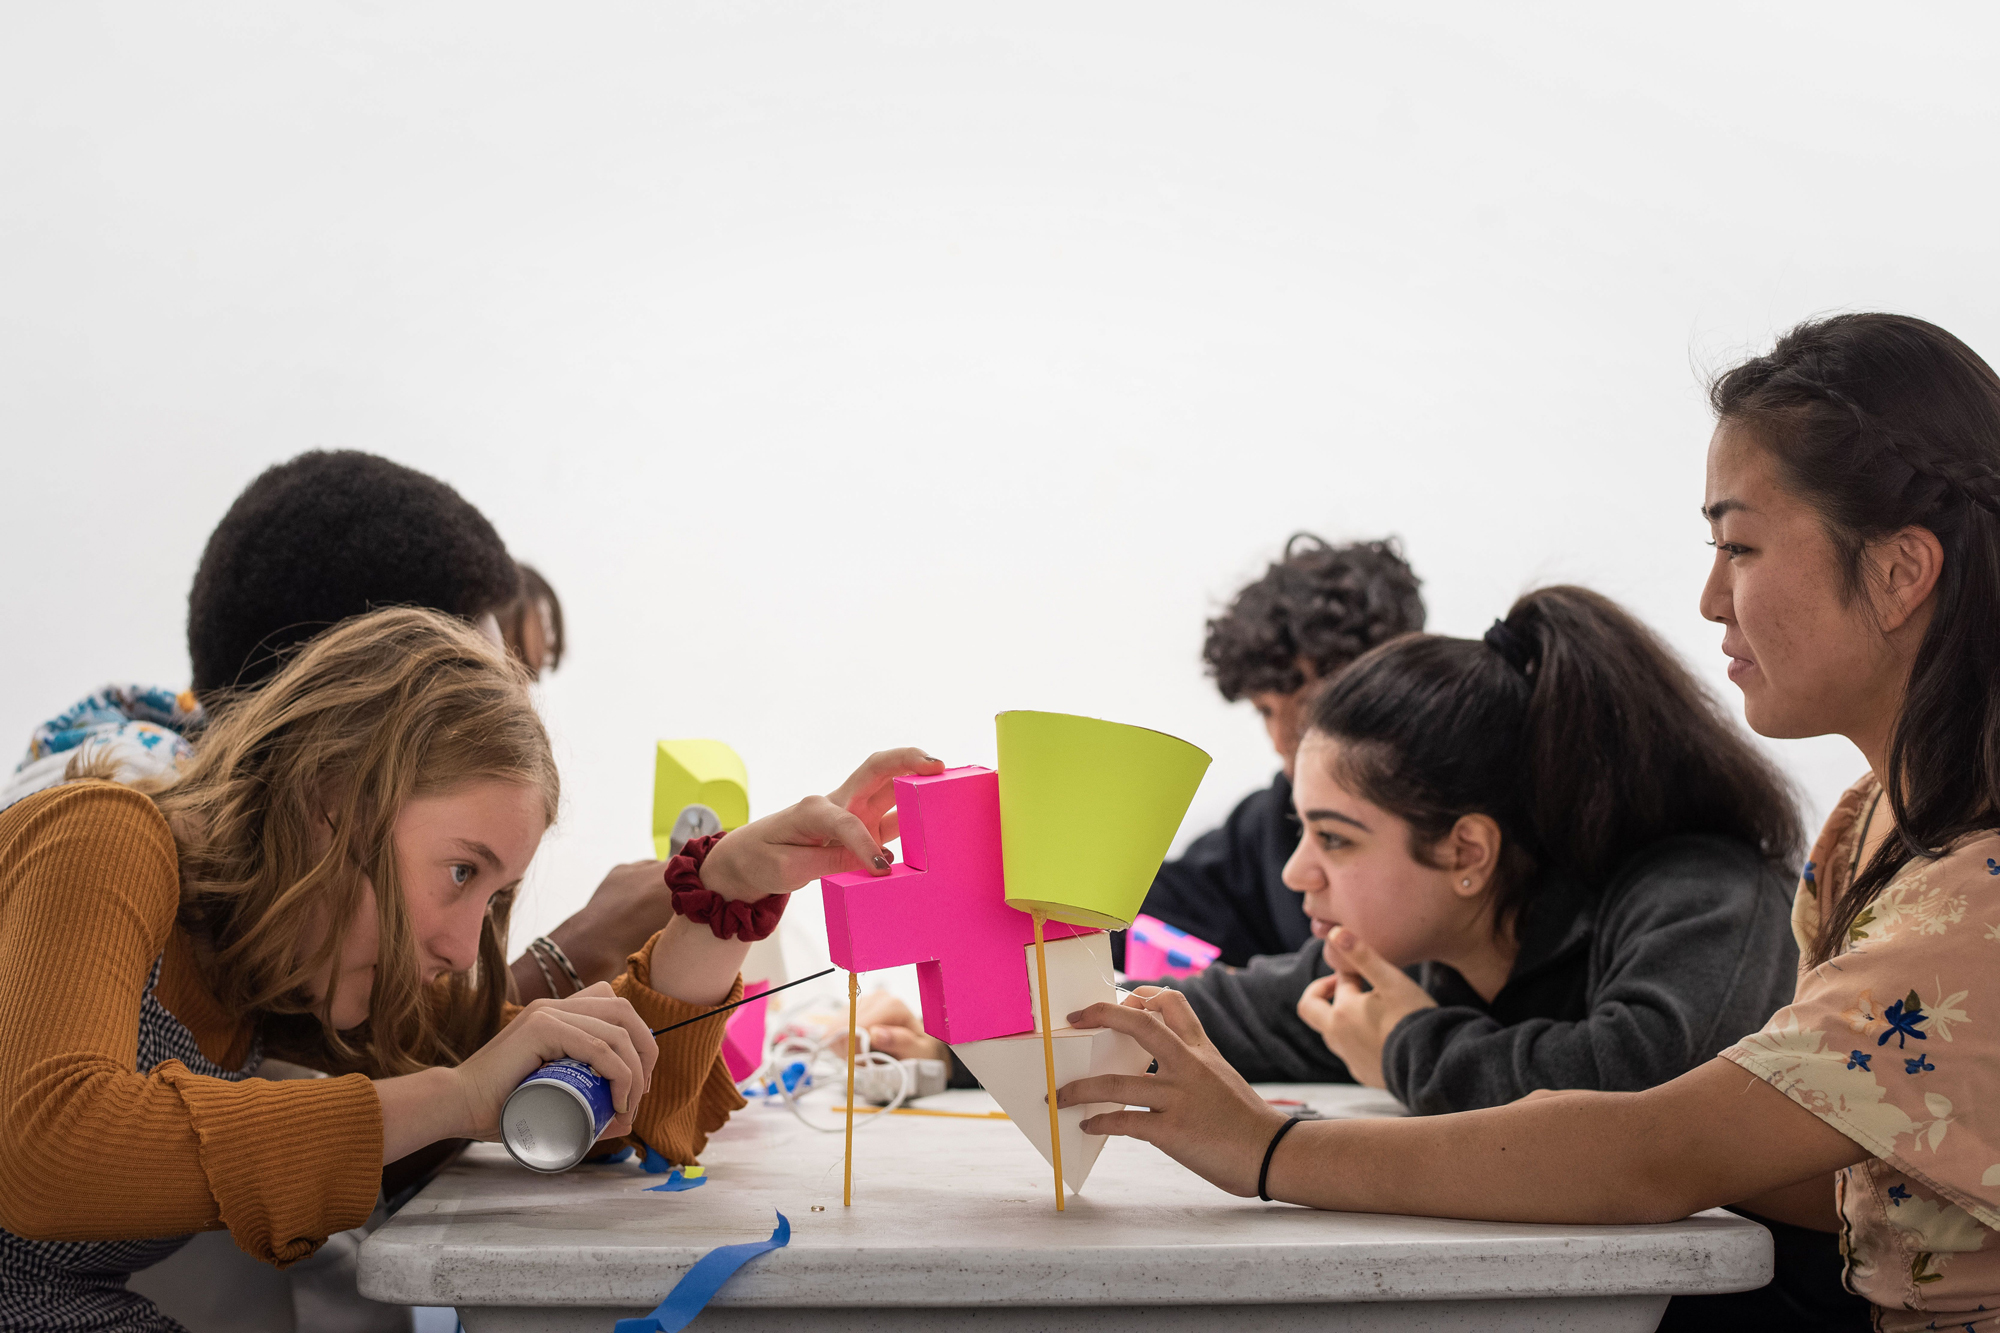 students sitting at table crafts